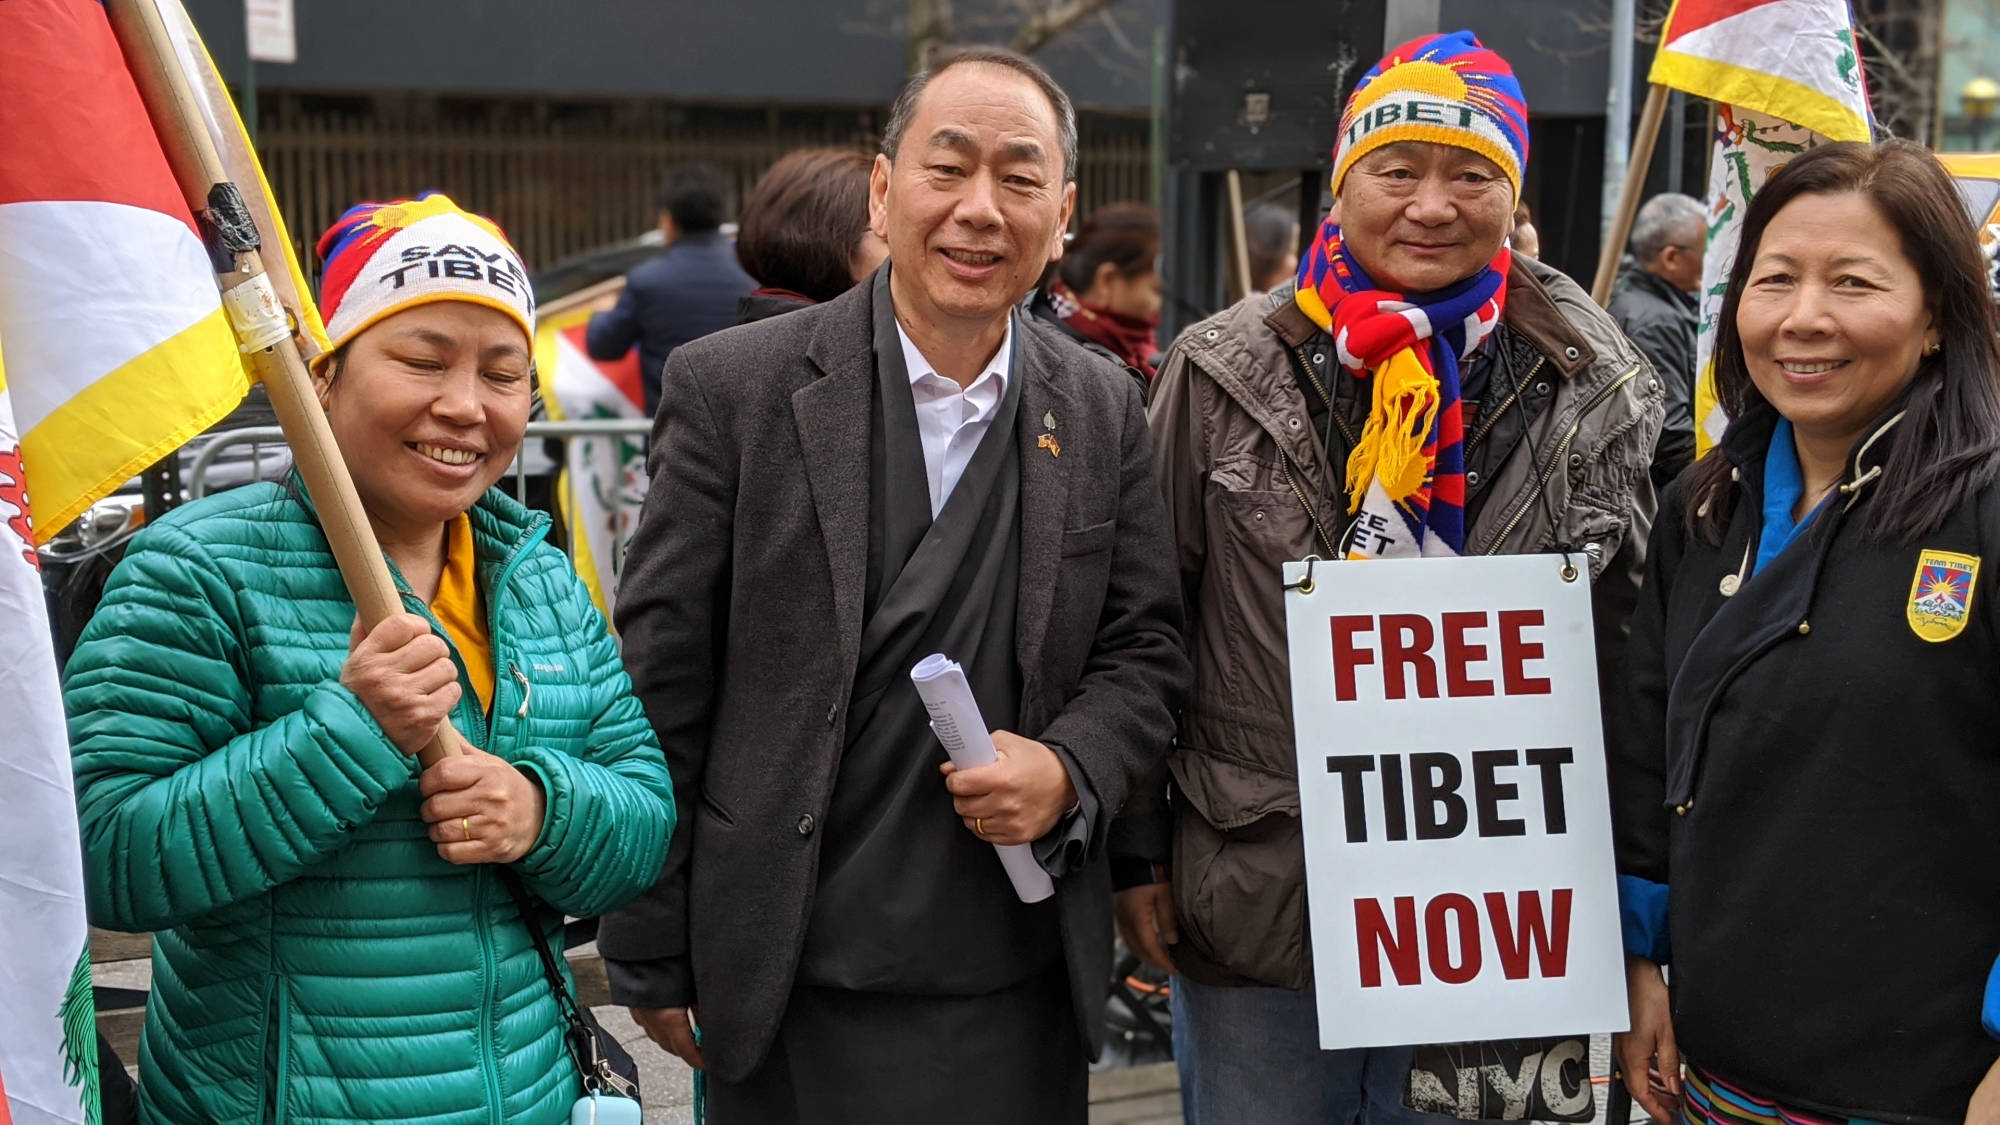 Lobsang Nyandak for Free Tibet!